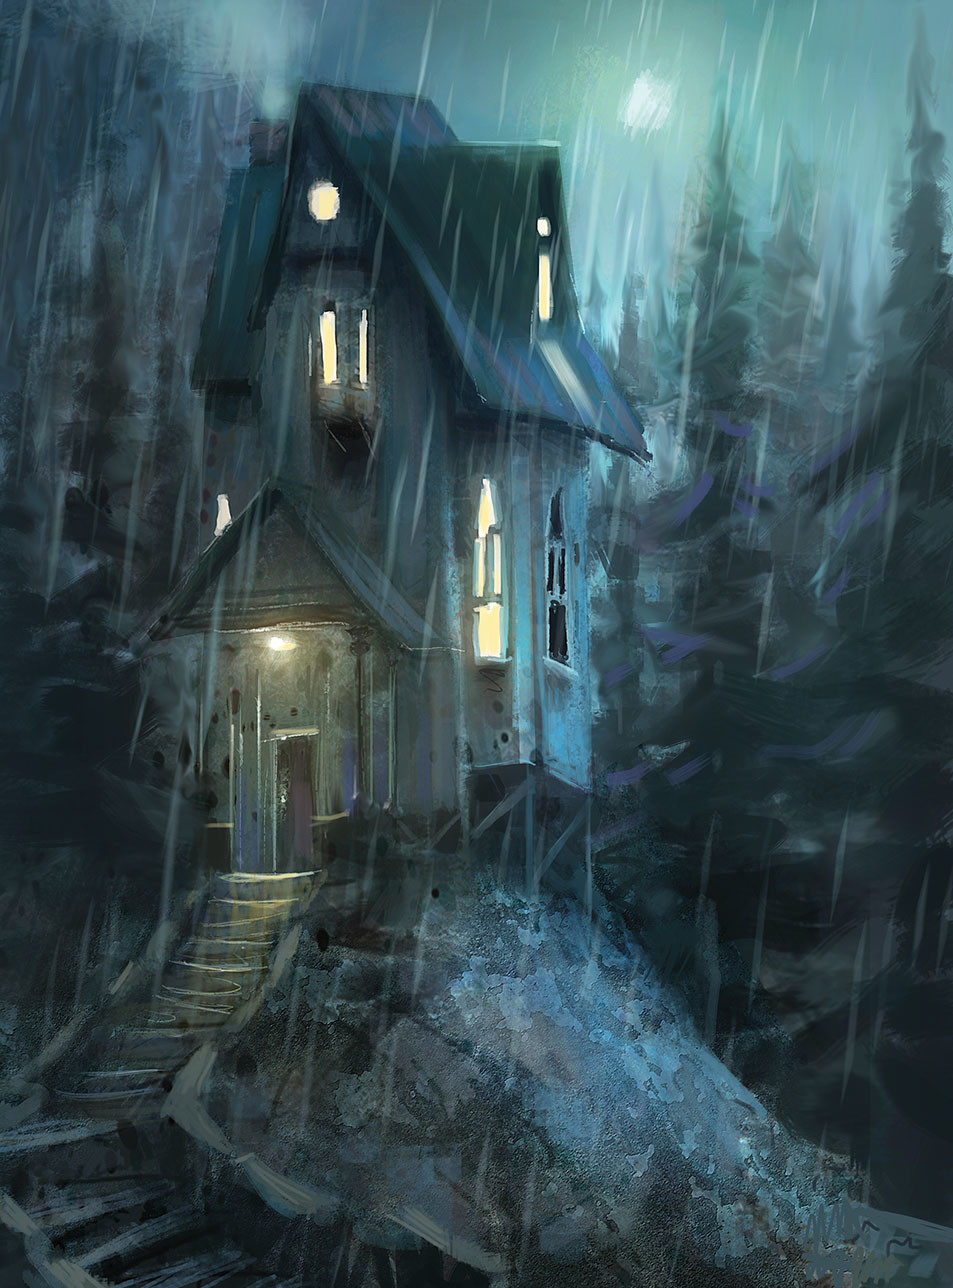 marco bucci digital painting illustration Night house